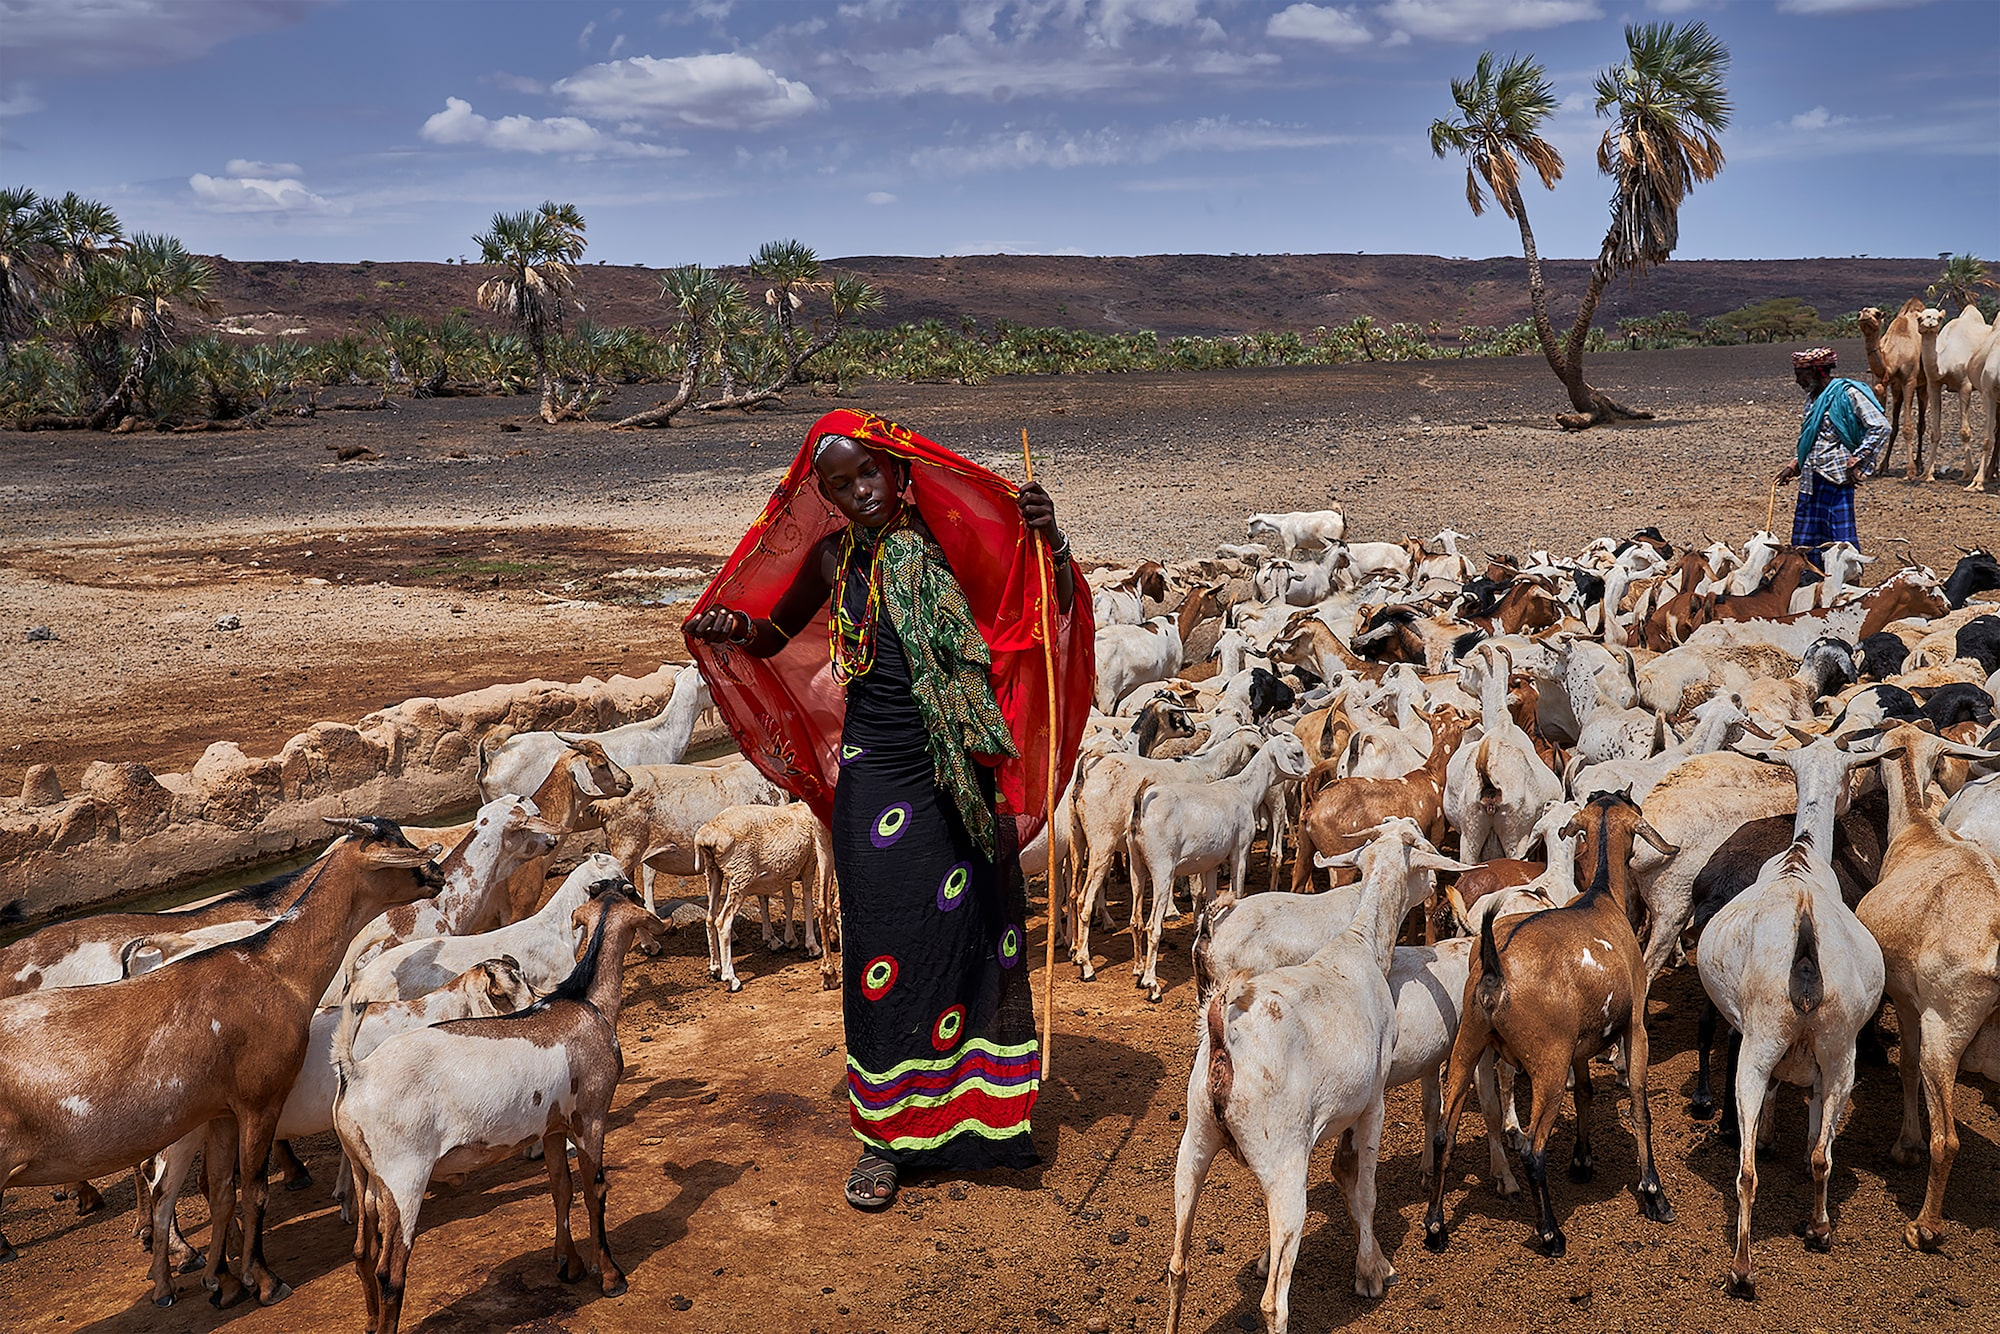 tomasz tomaszewski sony alpha 7RM3 young kenyan girl with a red shawl over her head leading a herd of goats